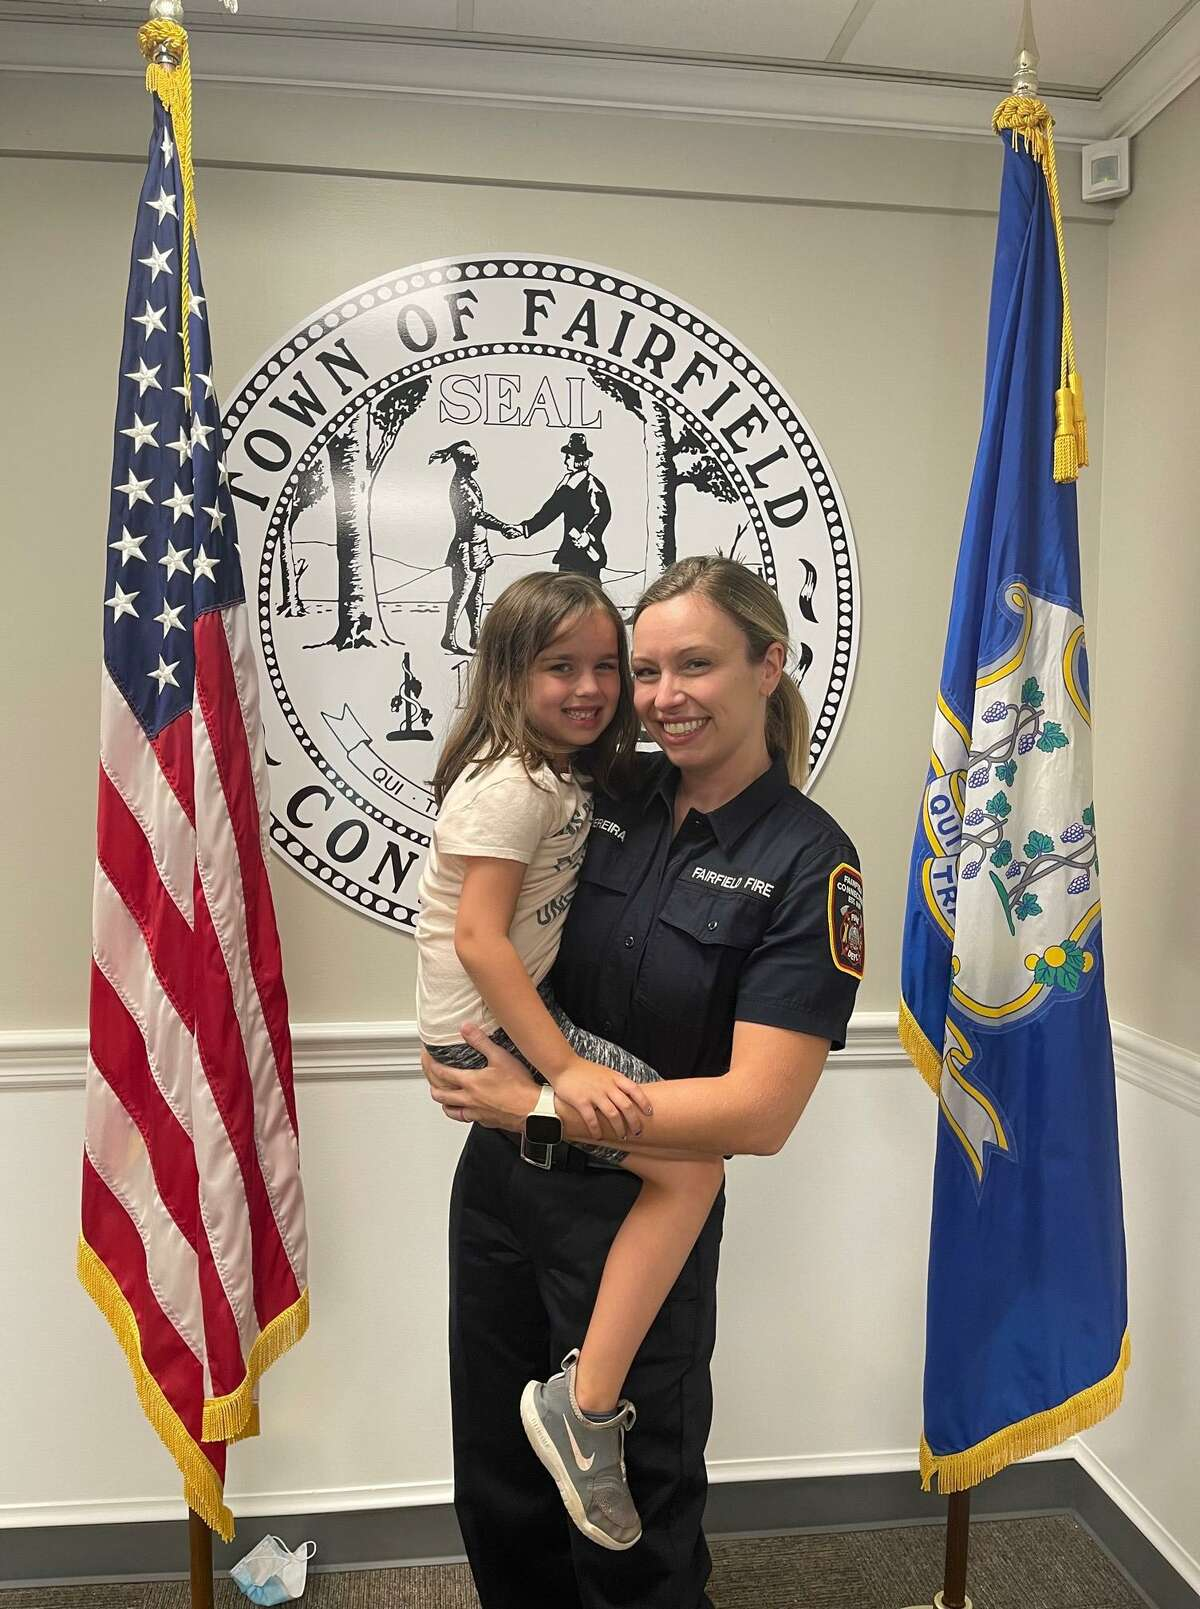 Caitlin Clarkson Pereira, of Fairfield, poses with her daughter after she was sworn in as one of Fairfield's newest firefighters.